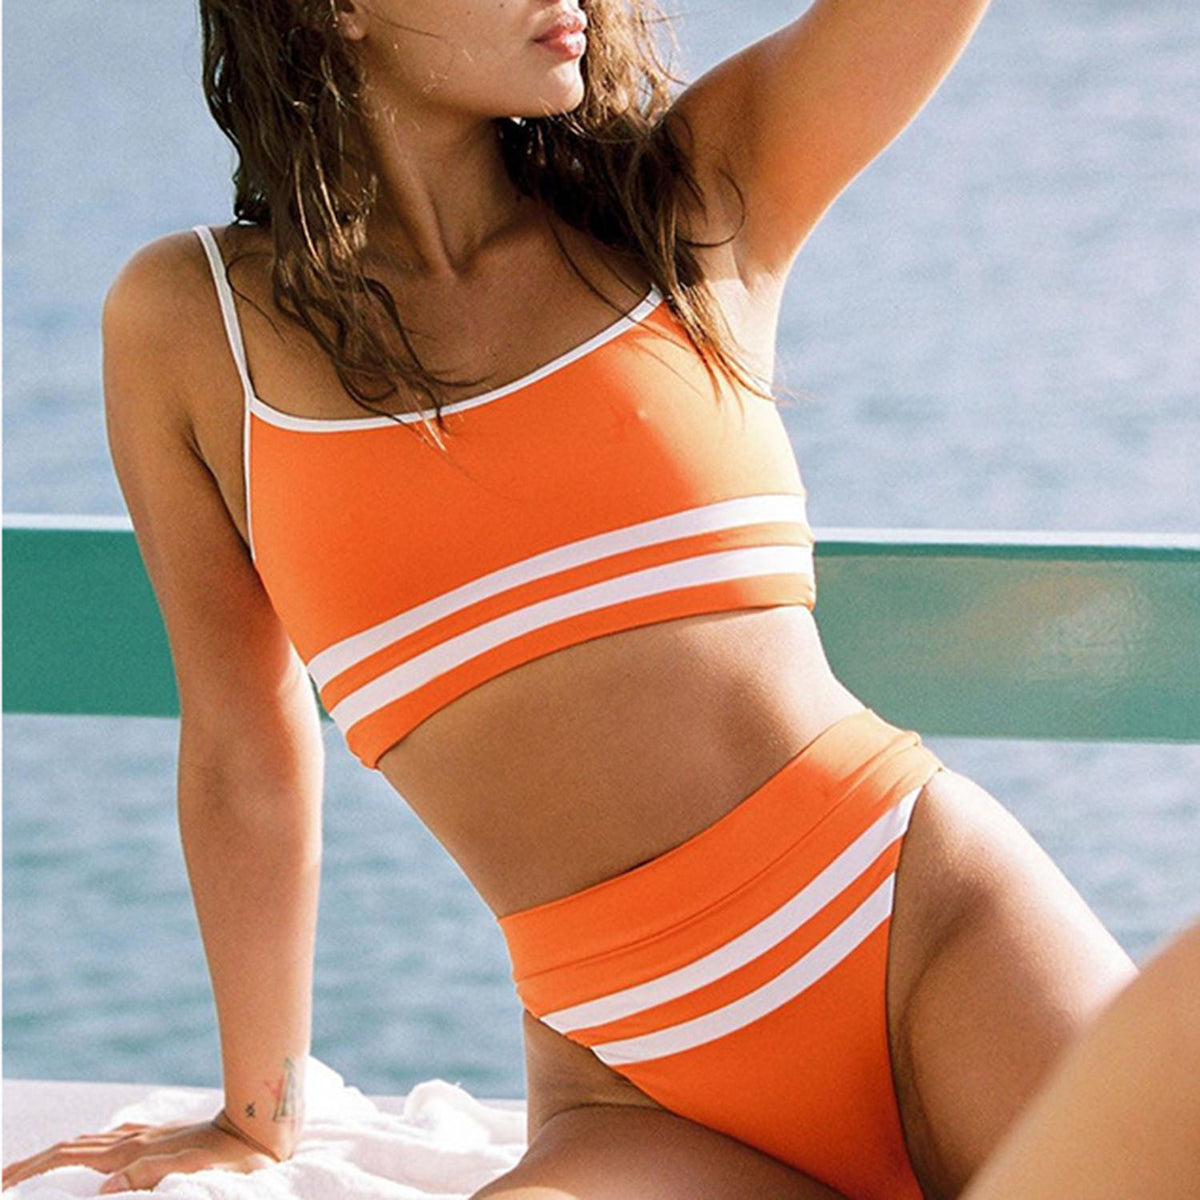 Sporty Color Block High Waisted Crop Top Bikini Swimsuit HT20 - worthtryit.com